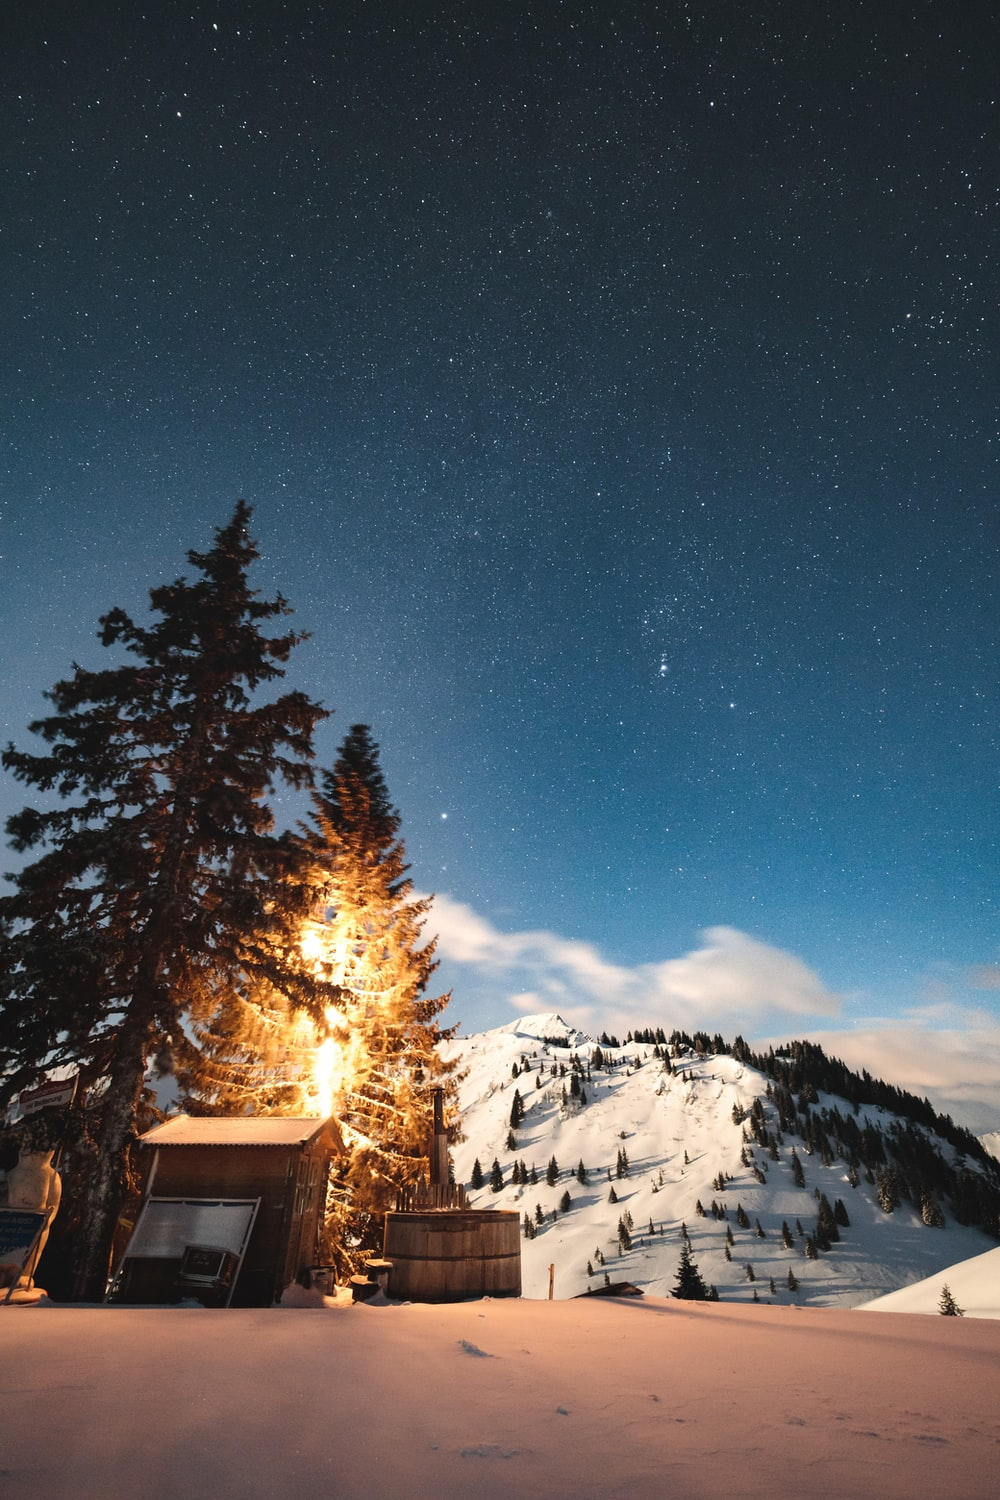 brown wooden house on snow covered ground near trees under blue sky during night time